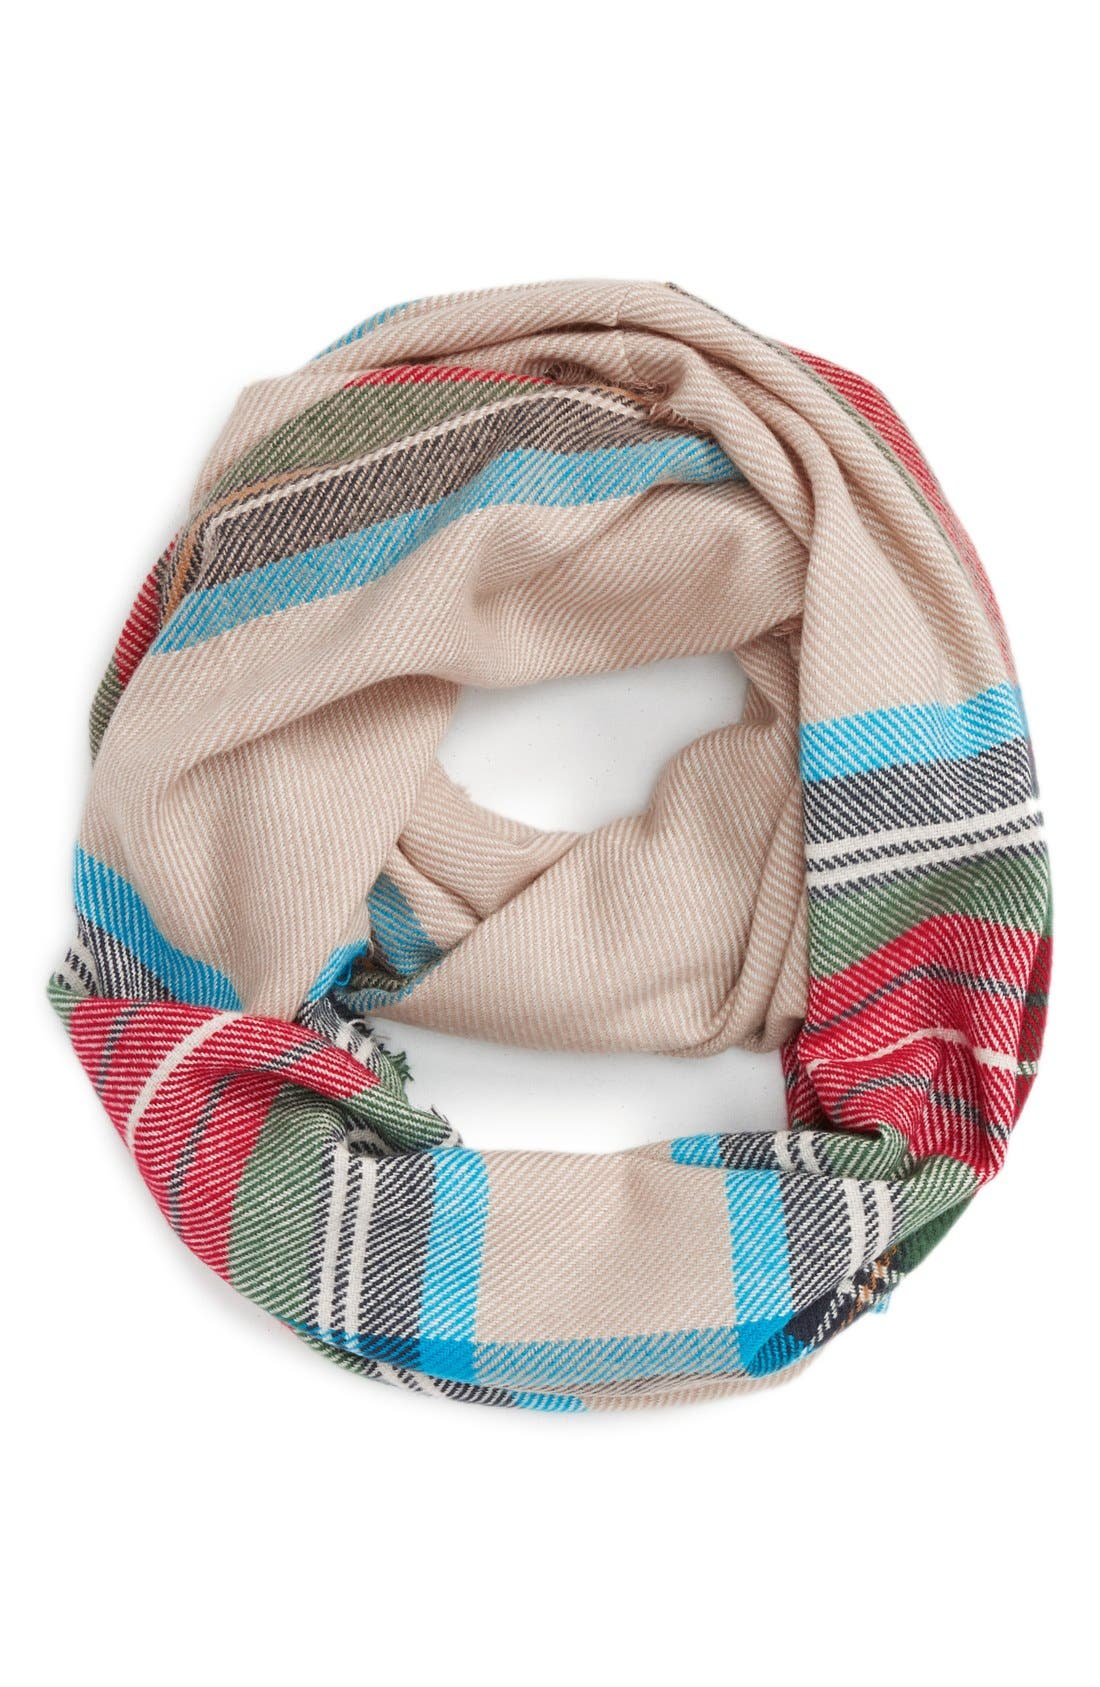 Alternate Image 1 Selected - BP. 'Heritage' Plaid Infinity Scarf